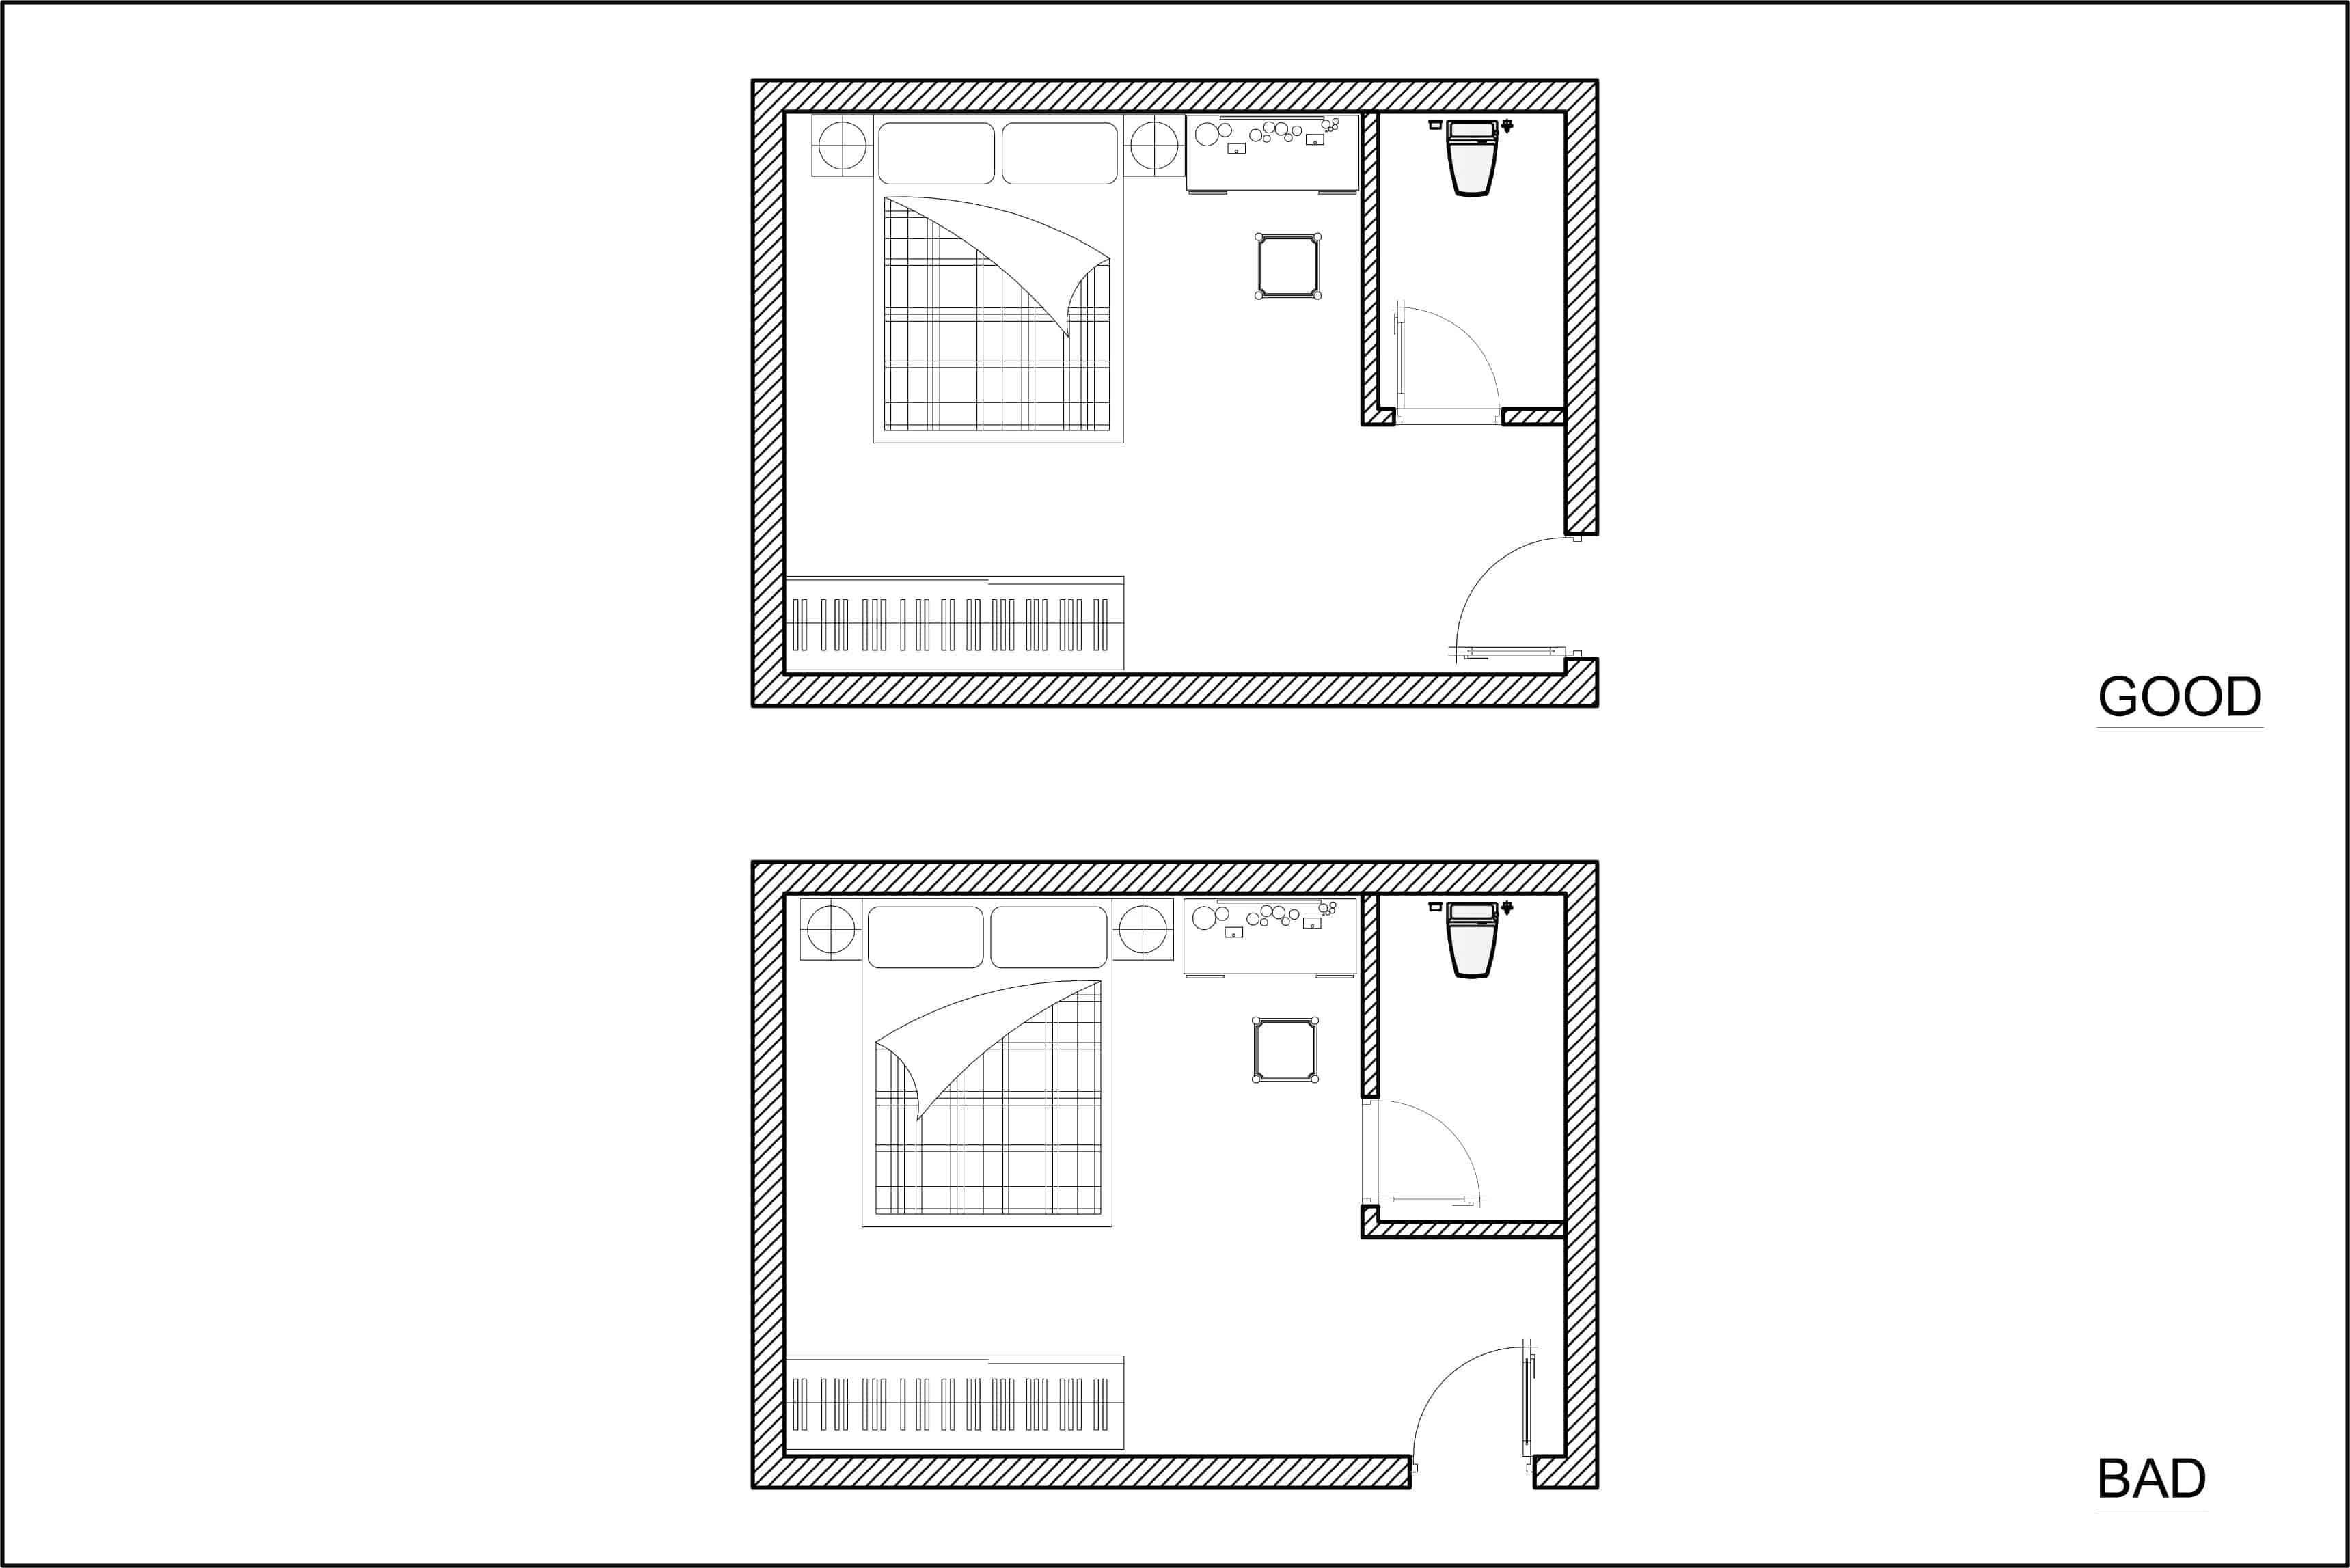 Layout diagram of bedroom door location for optimal bedroom Feng Shui